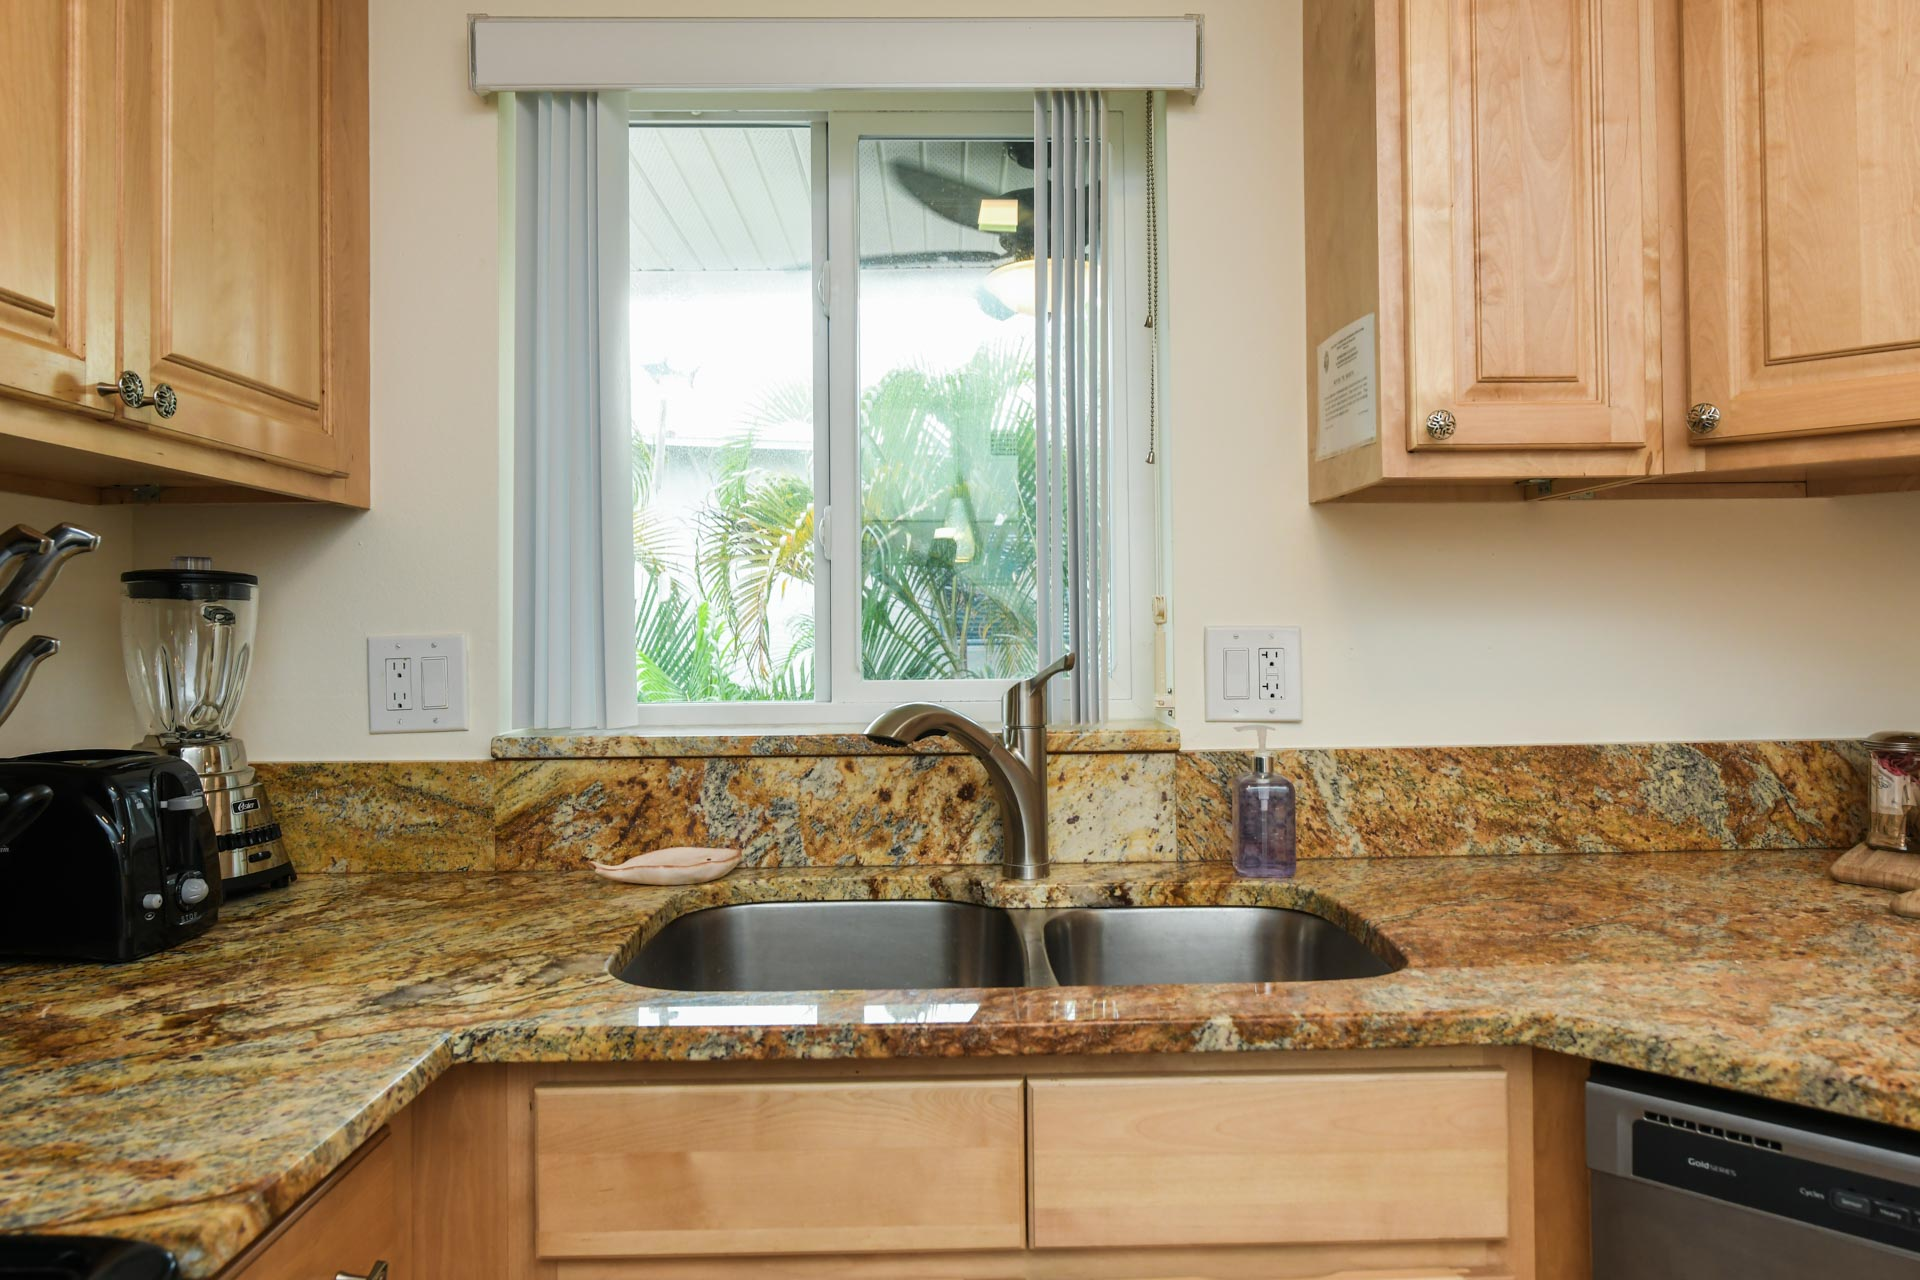 Double sided sink and dishwasher